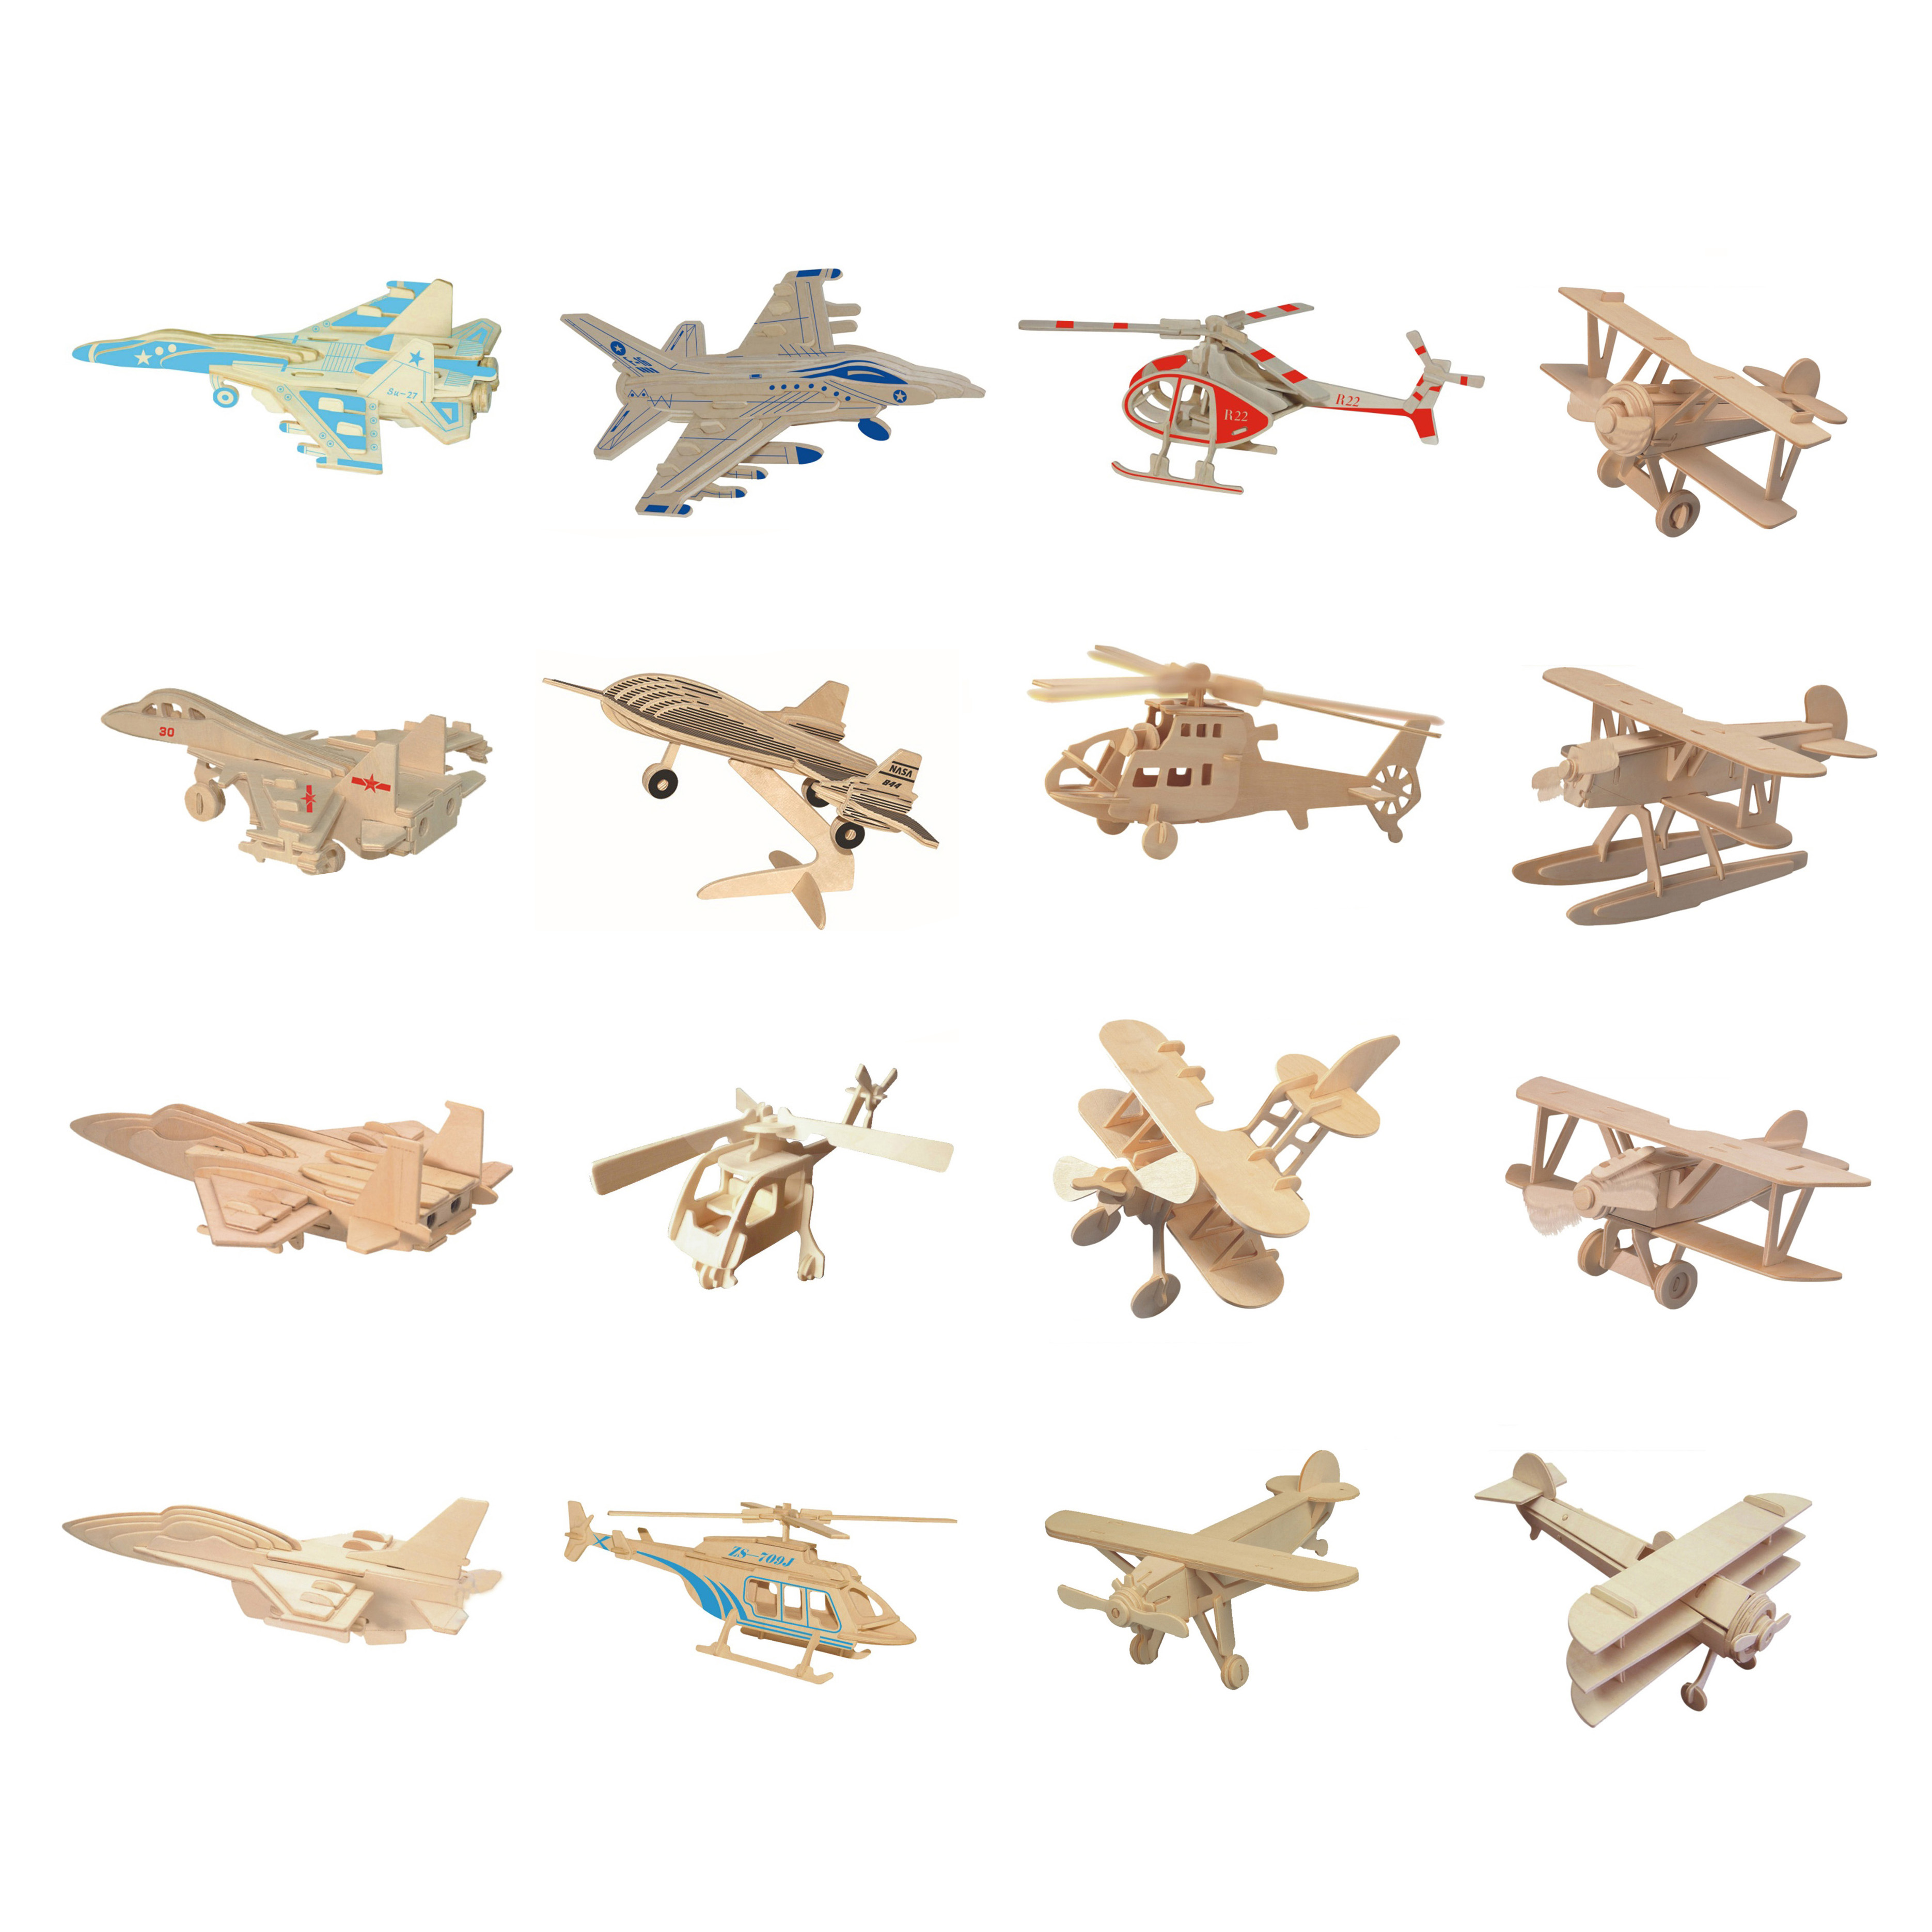 Chanycore Baby Learning Educational Wooden Toys 3D Puzzle Plane Helicopter Su-27 F-15 F-16 Propeller Aircraft Kids Gifts 4294